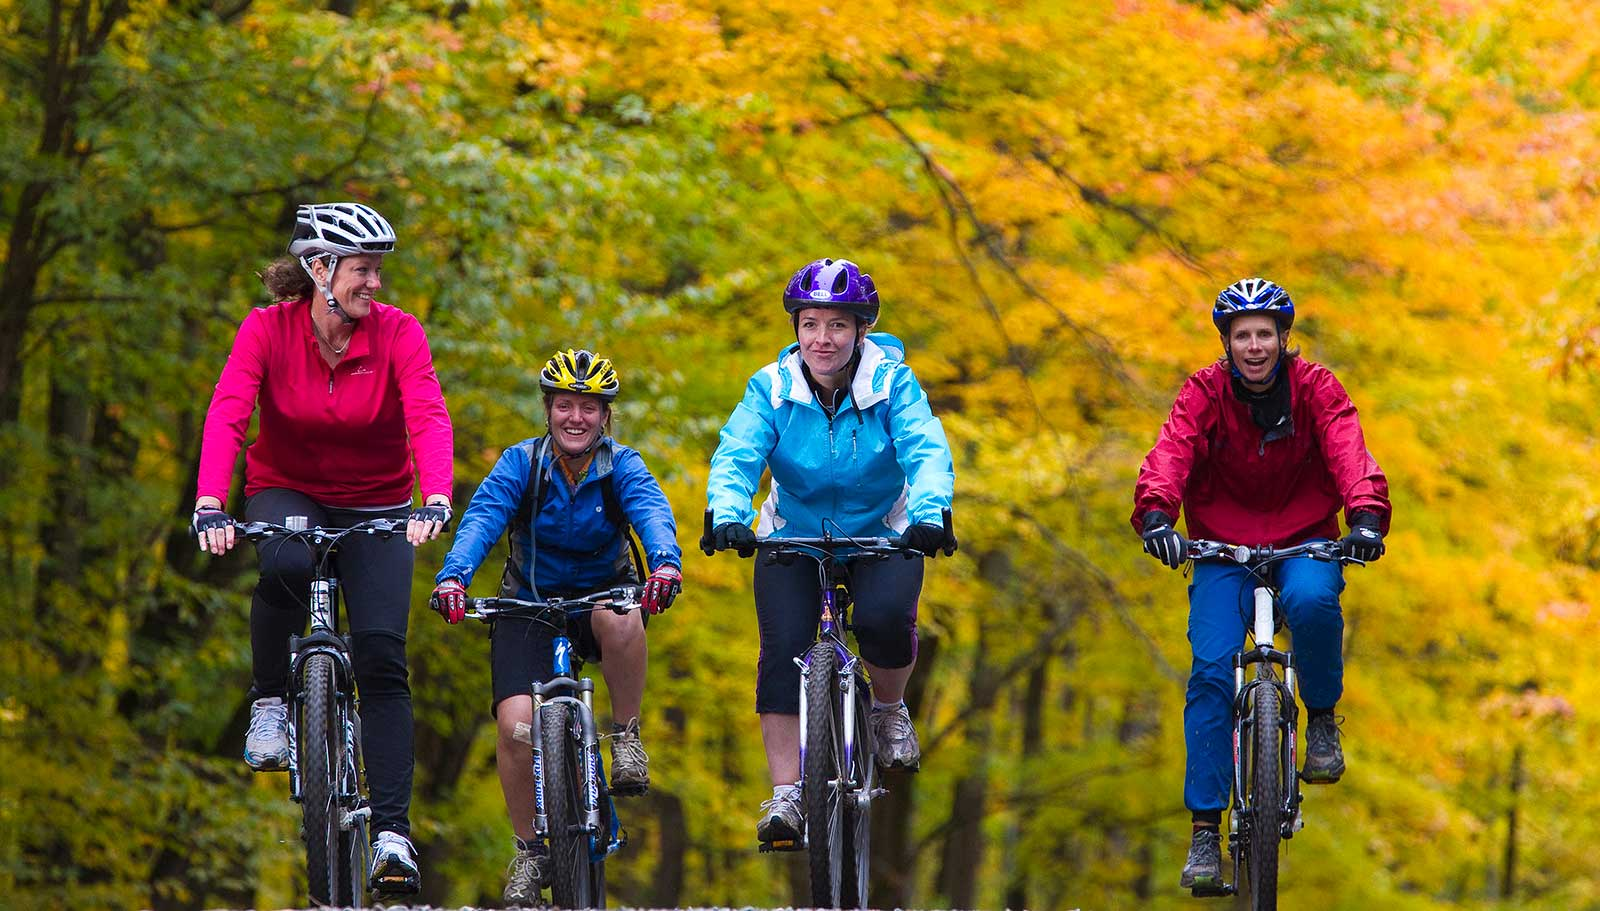 Women biking together in Algonquin Park in fall